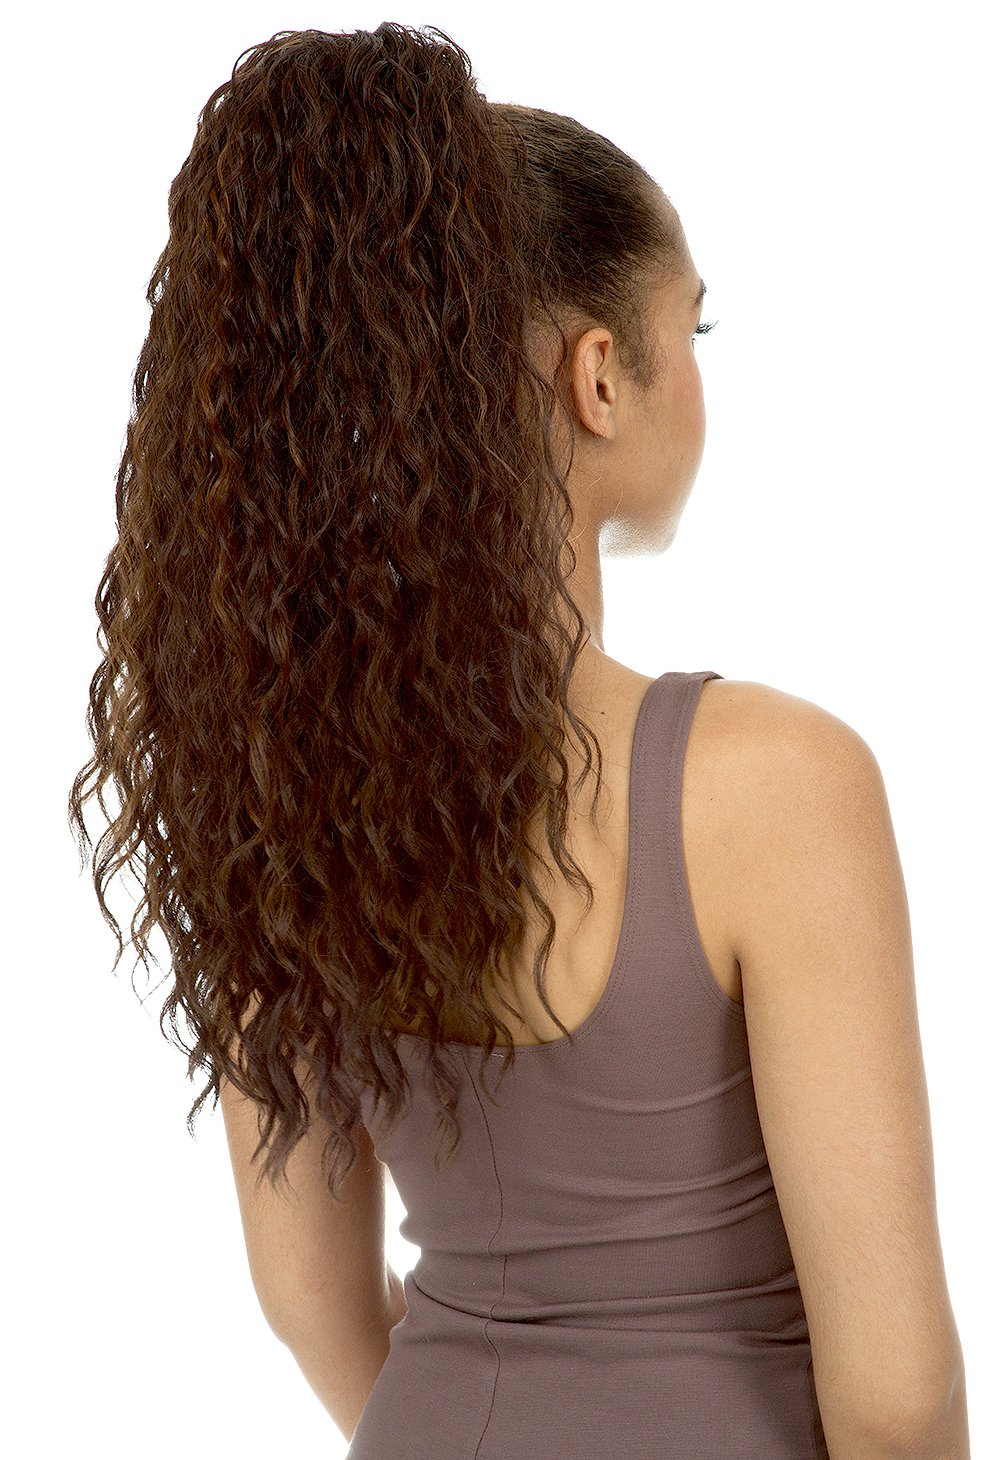 [Ponytail] New Born Free Drawstring Ponytail Curly Style - DIONNA - 0369 (1)